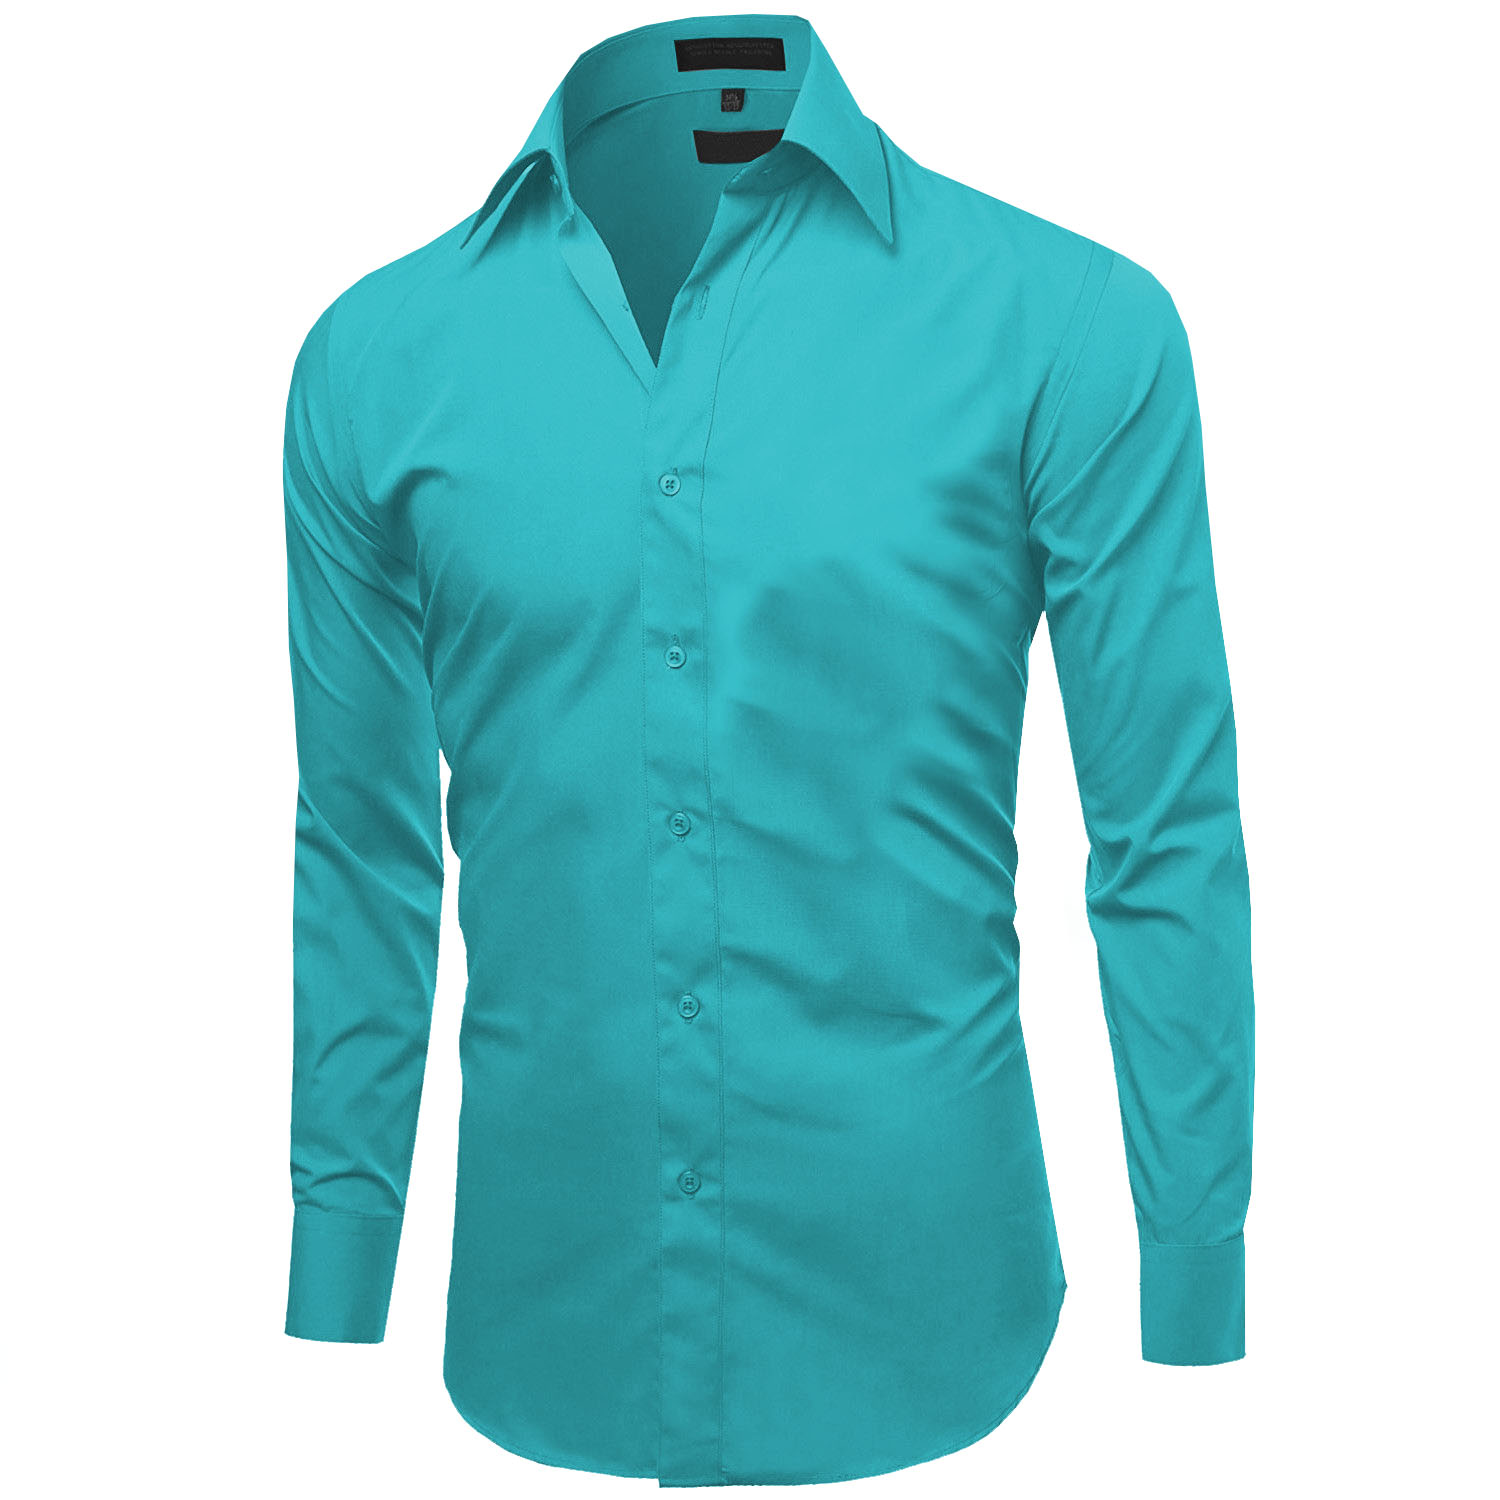 Omega-Italy-Men-039-s-Premium-Slim-Fit-Button-Up-Long-Sleeve-Solid-Color-Dress-Shirt thumbnail 53